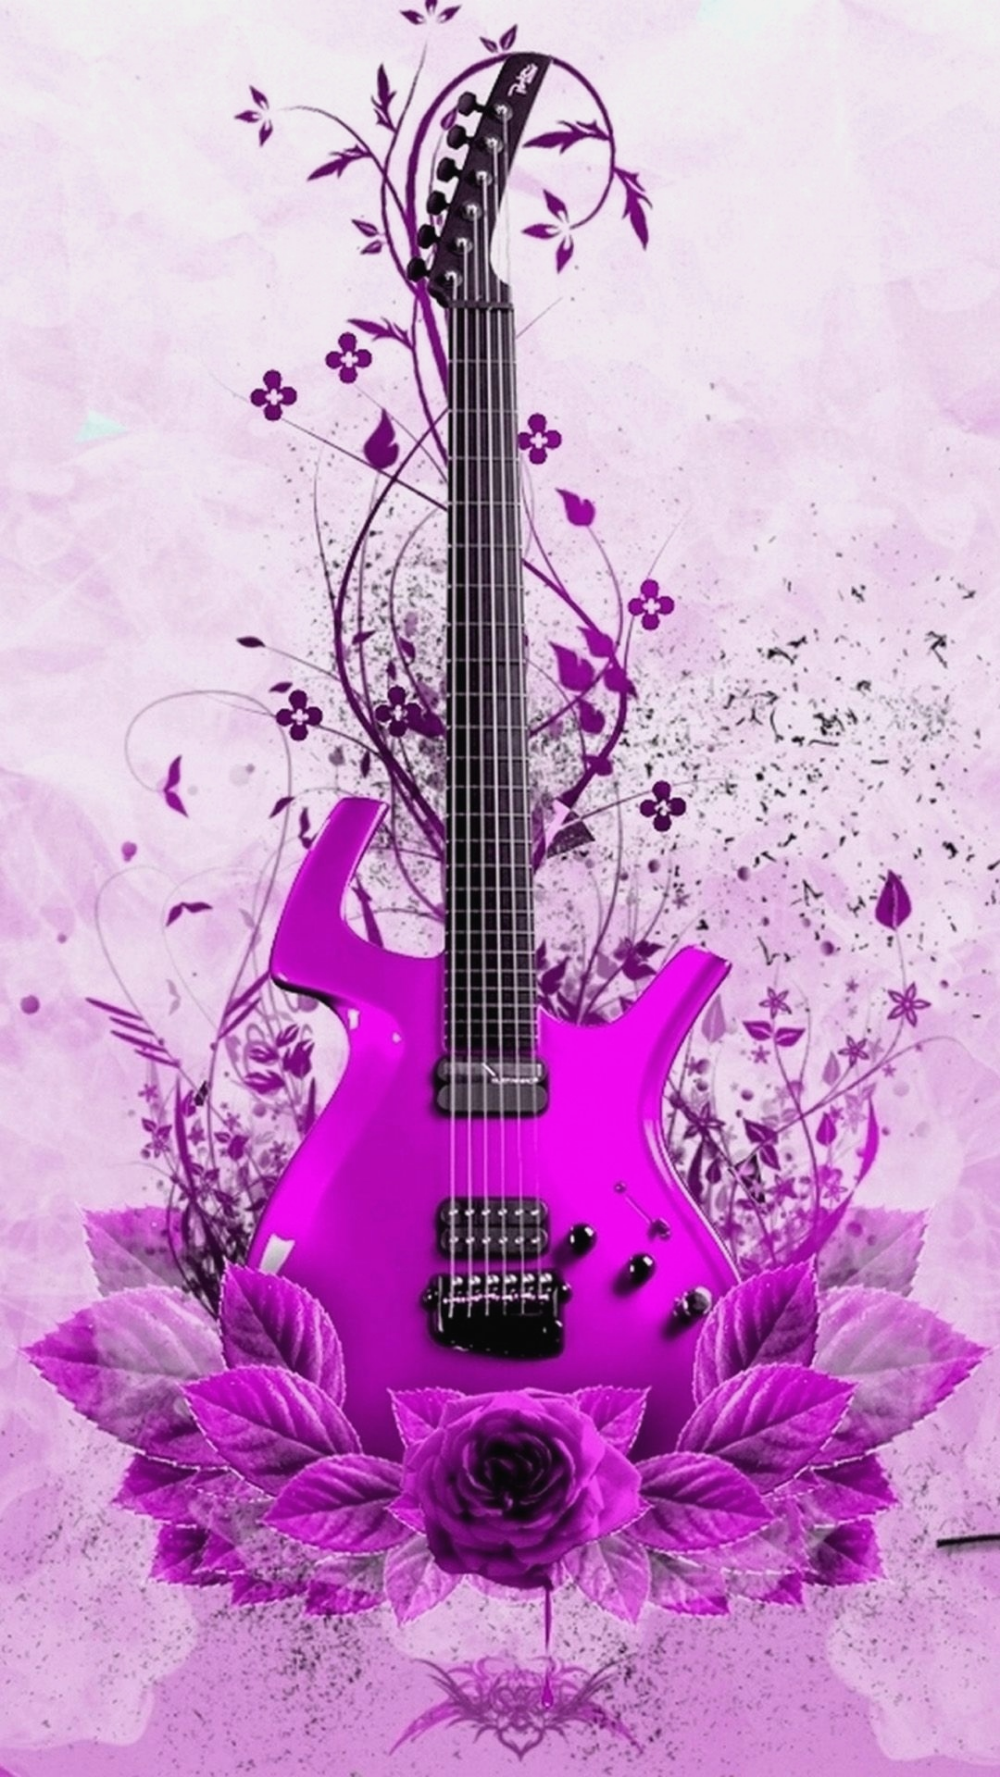 Abstract Music Guitar Instrument Iphone 6 Plus Wallpaper Pink Guitar Wallpaper For Mobile Is Free On Elsetg Pink Guitar Wallpaper Pink Guitar Music Wallpaper